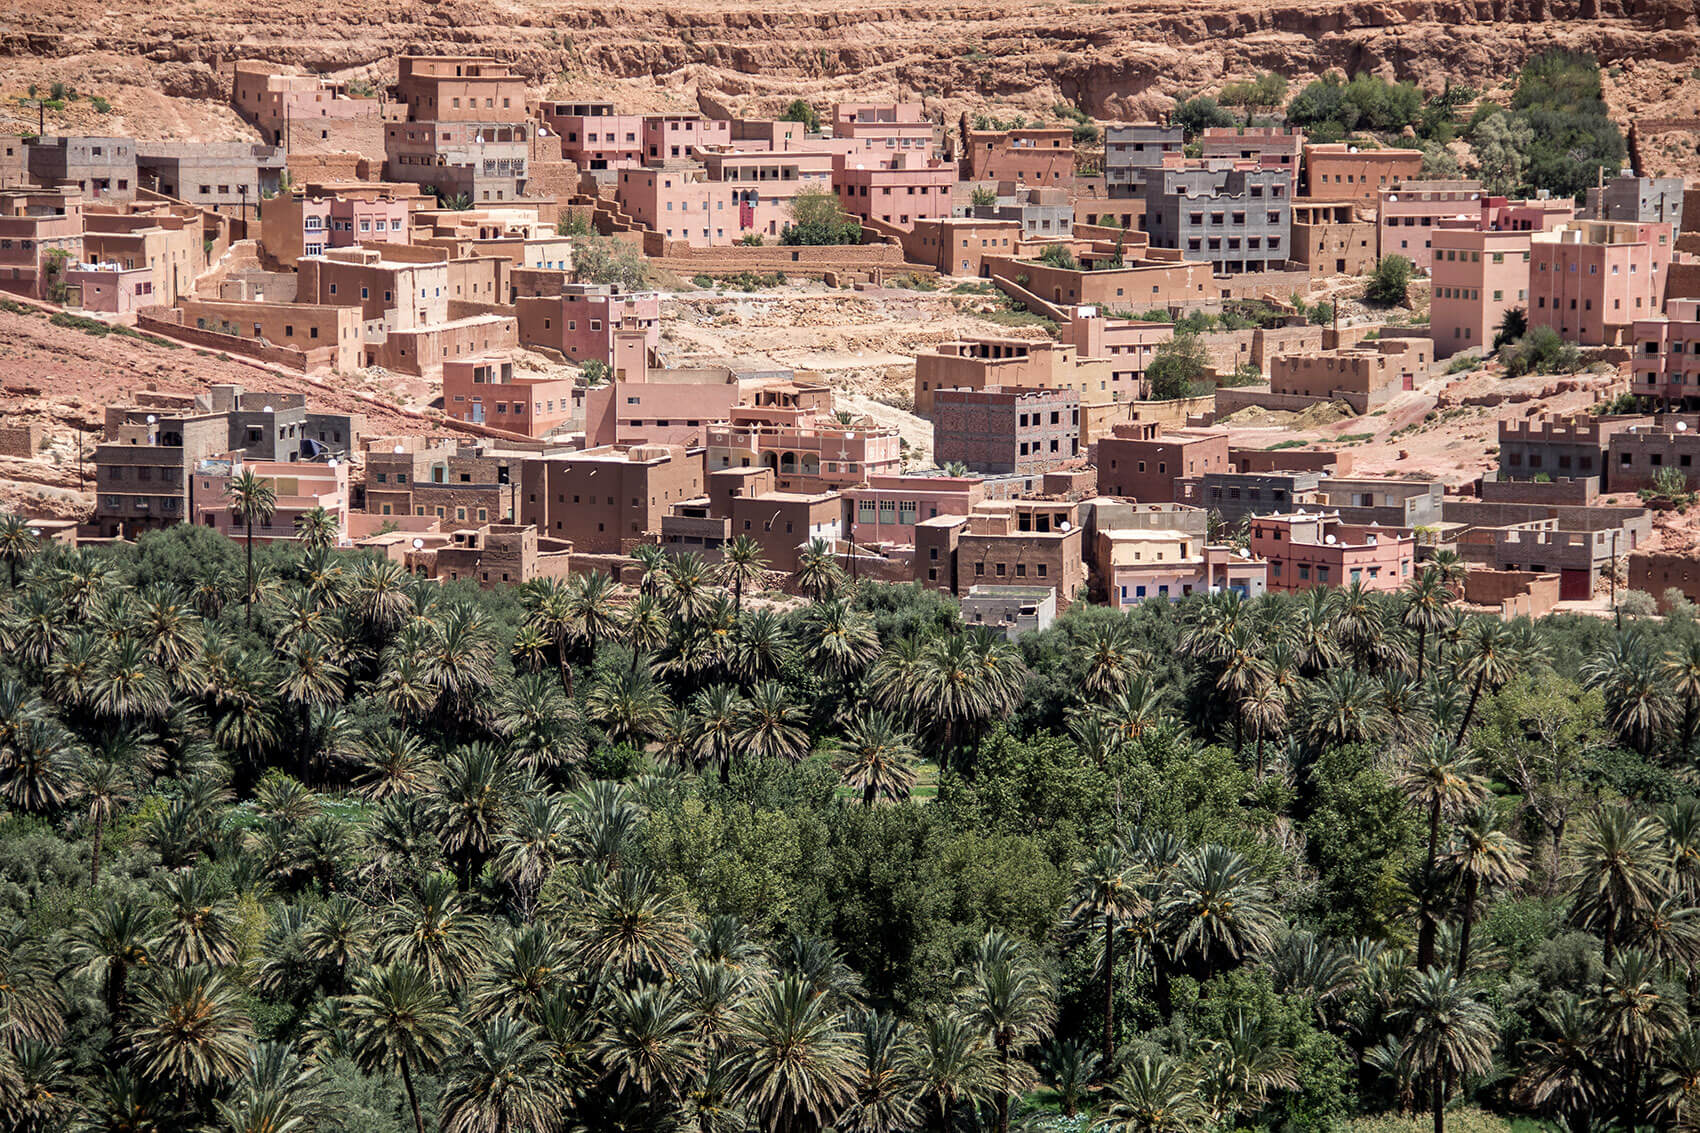 Oasis and city of Boumalne